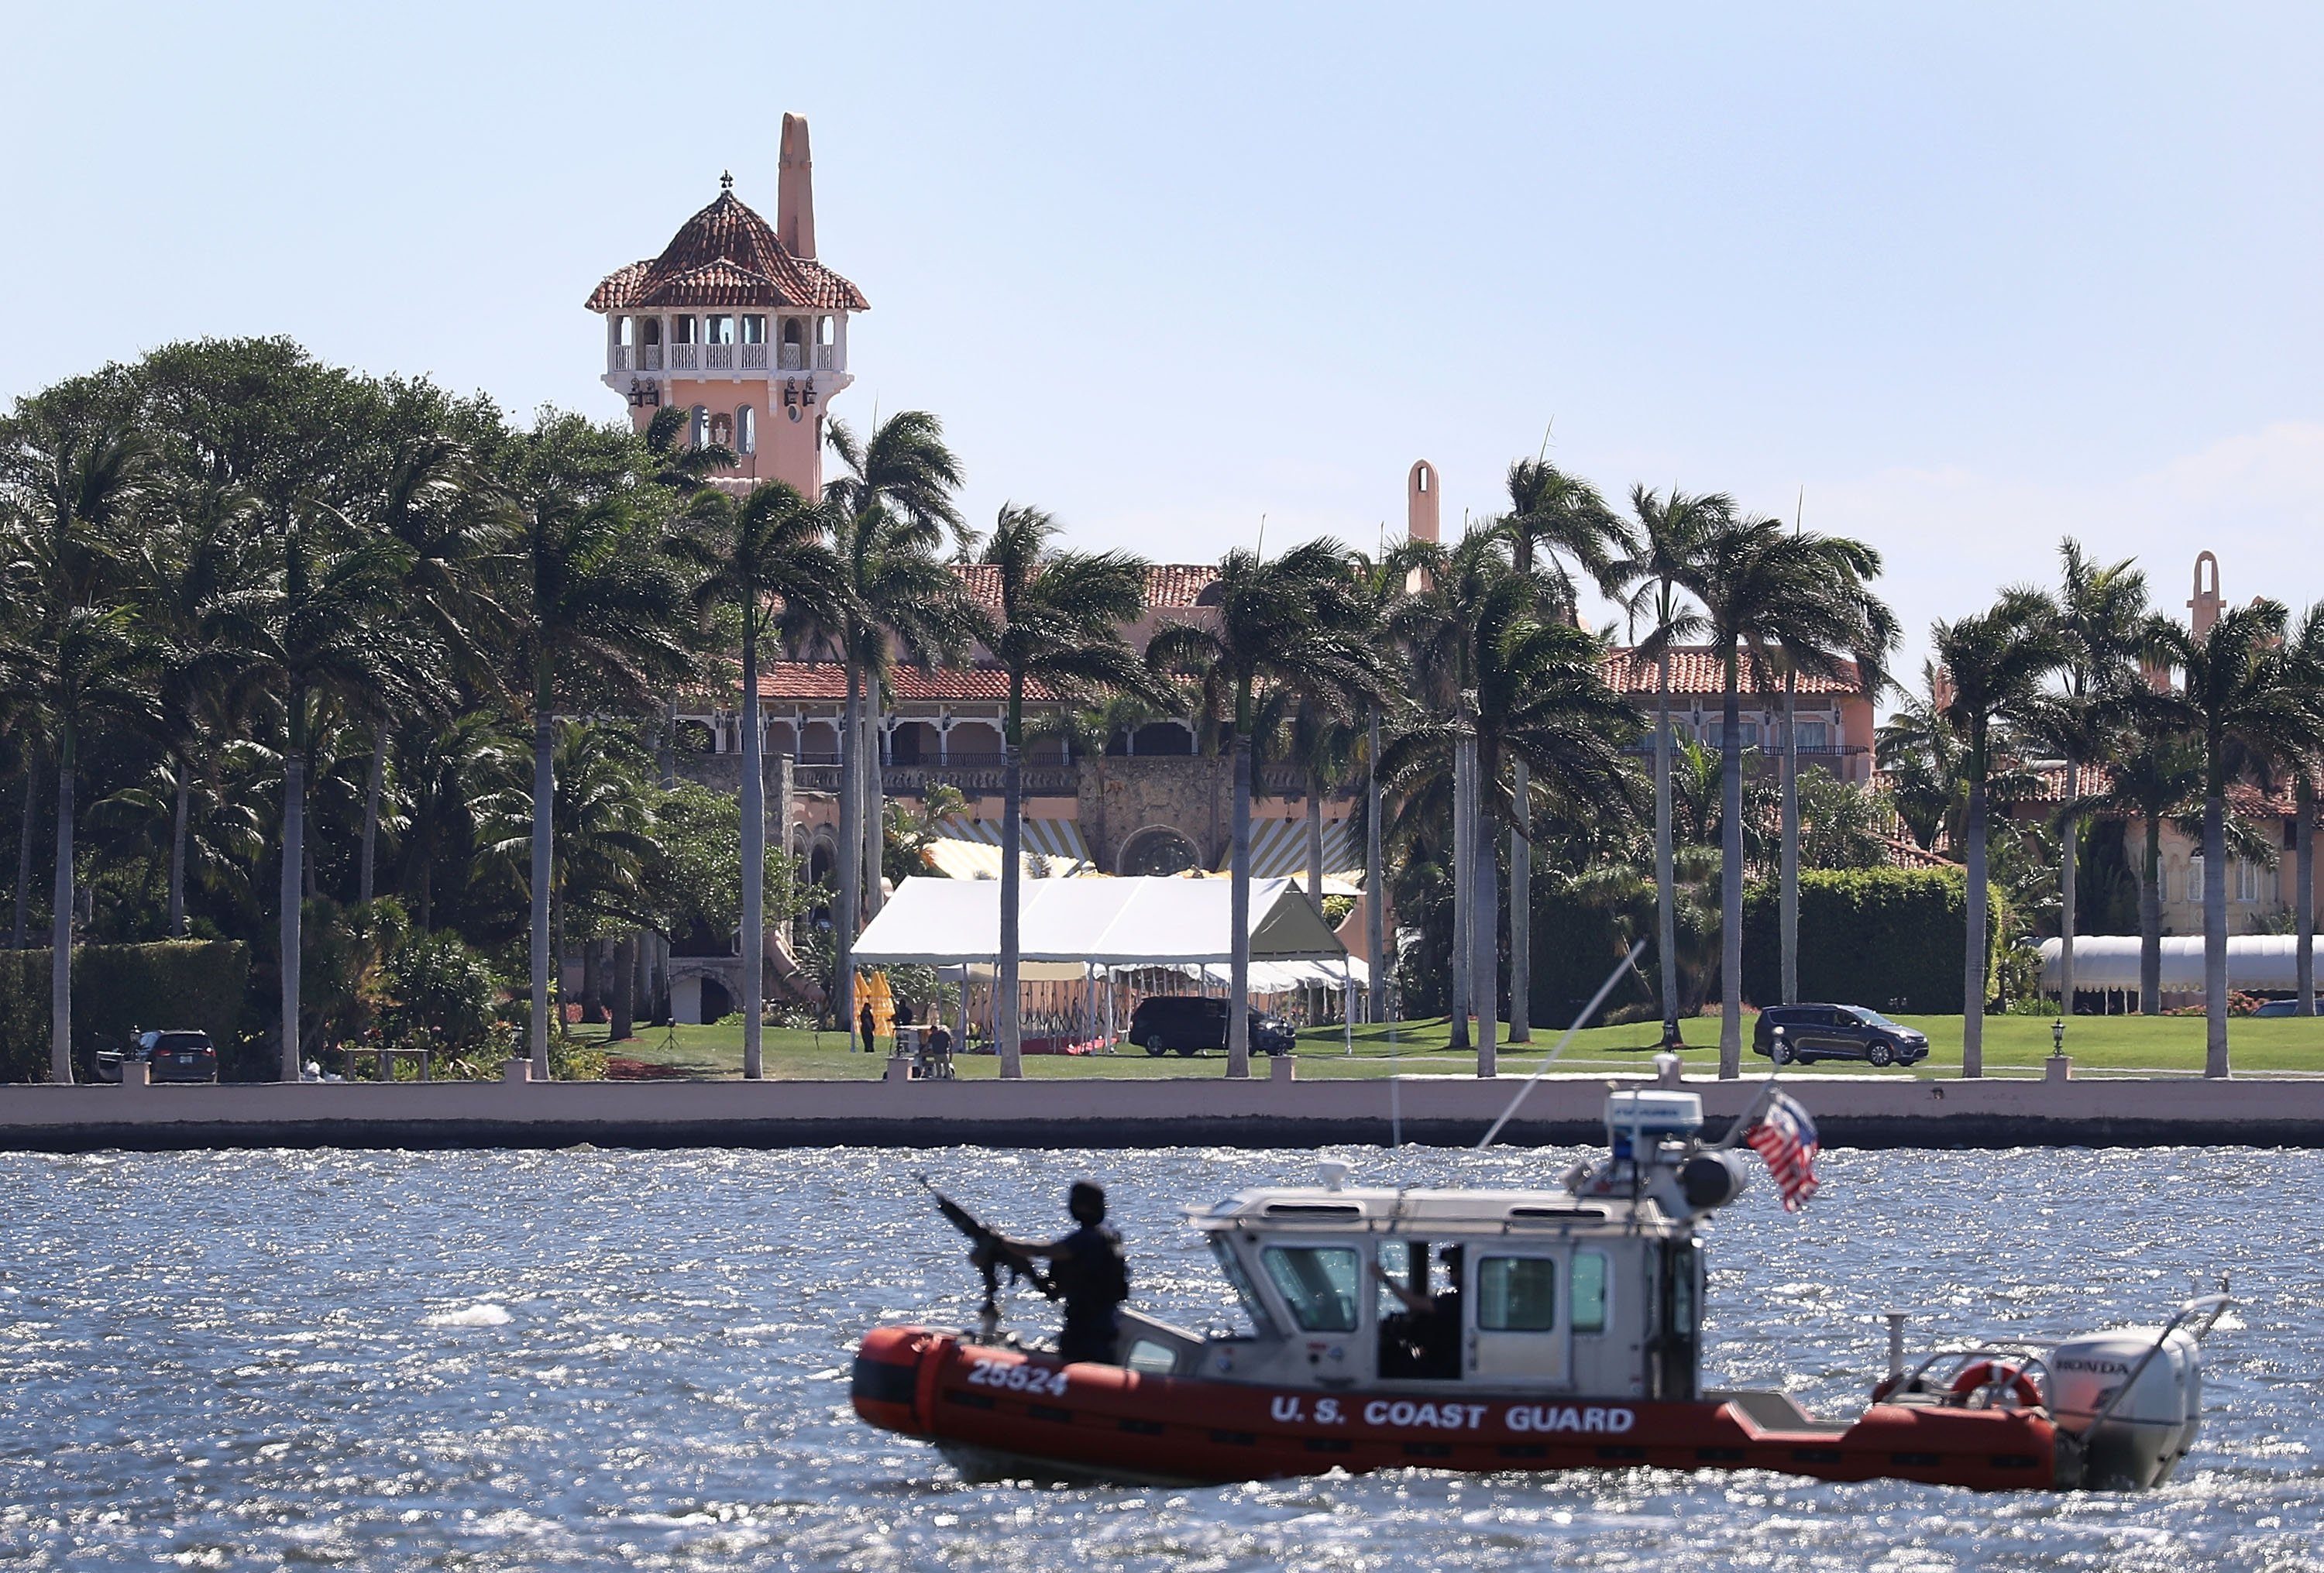 PALM BEACH, FL - APRIL 07: A Coast Guard boat is seen patrolling in front of the Mar-a-Lago Resort where President Donald Trump held meetings with Chinese President Xi Jinping on April 7, 2017 in Palm Beach, Florida. The two presidents spoke about China/US relations as well as the U.S. bombing of Syria last night. (Photo by Joe Raedle/Getty Images)